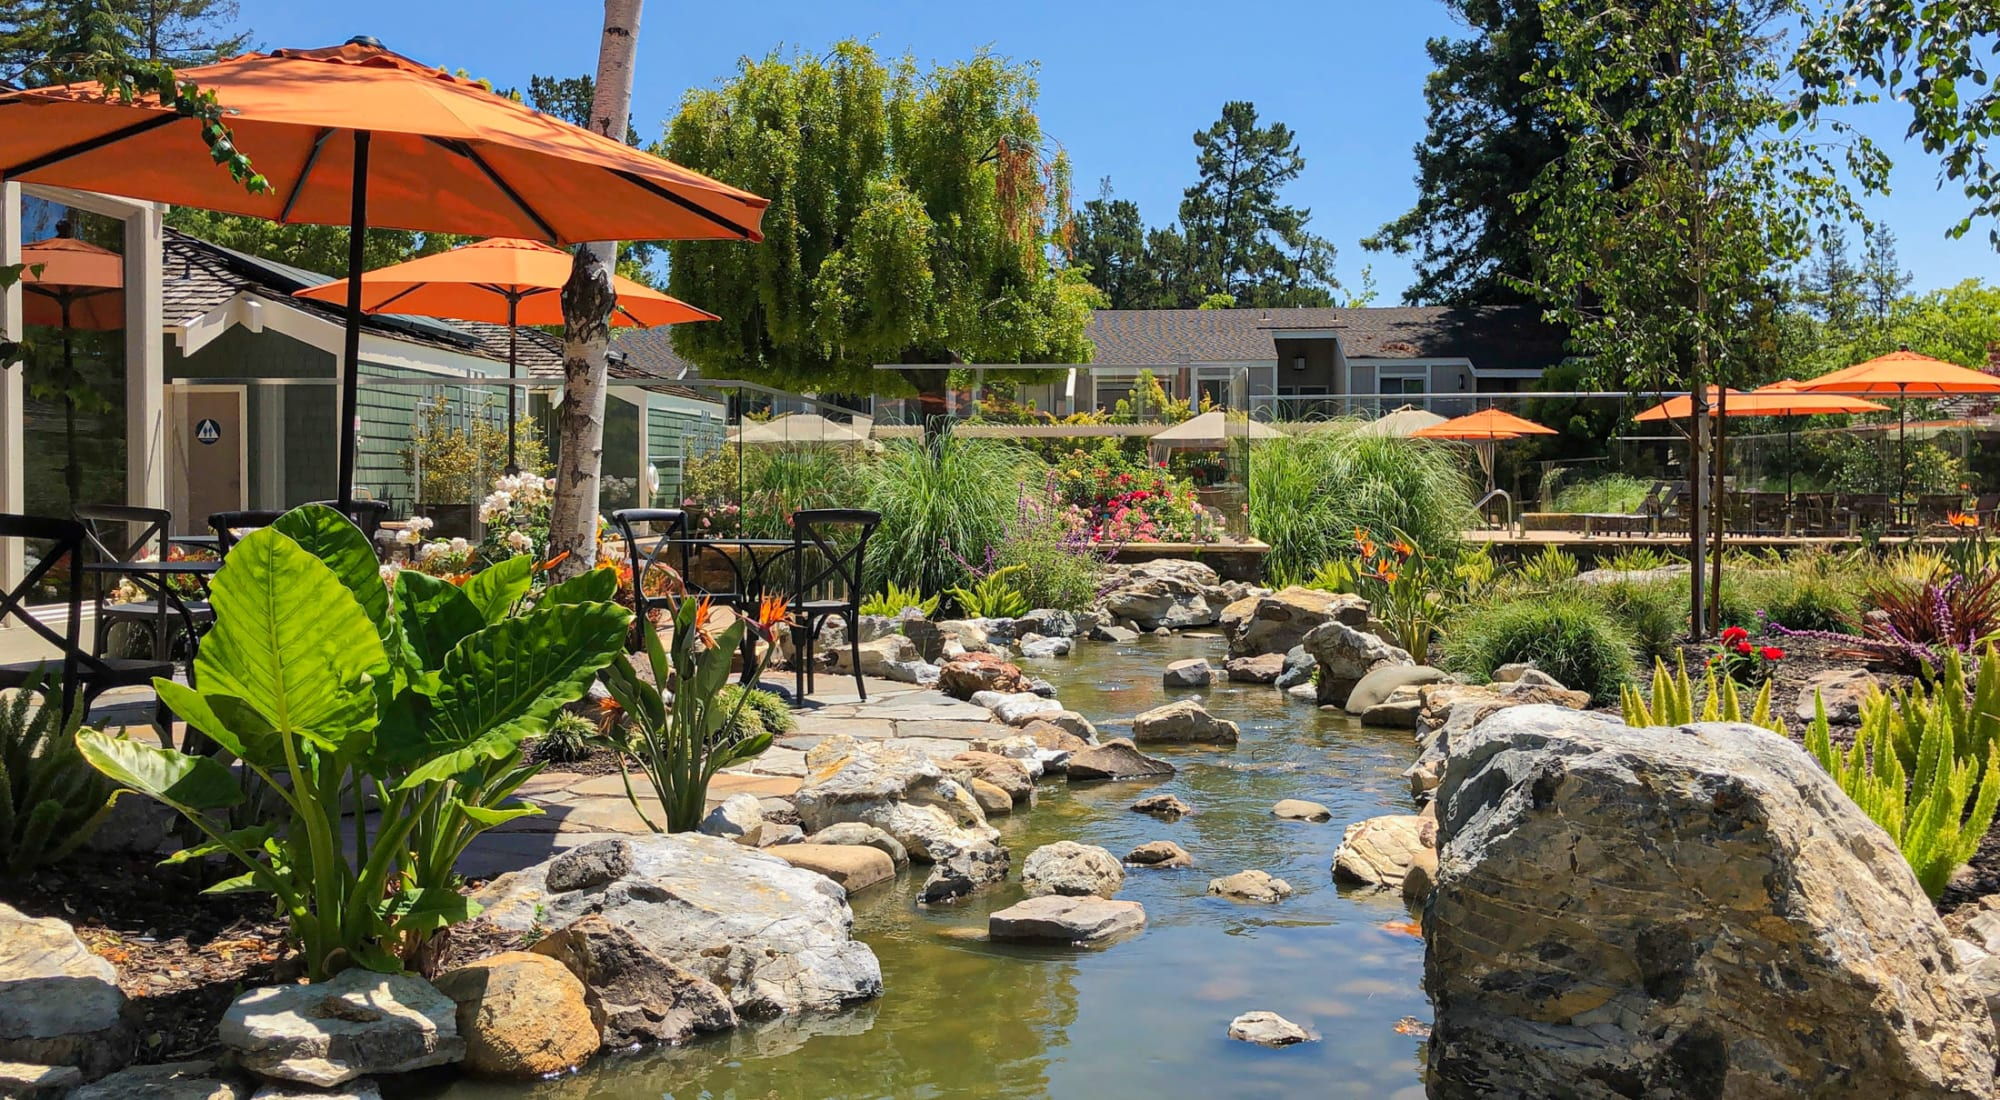 Glenbrook Apartments in Cupertino, California